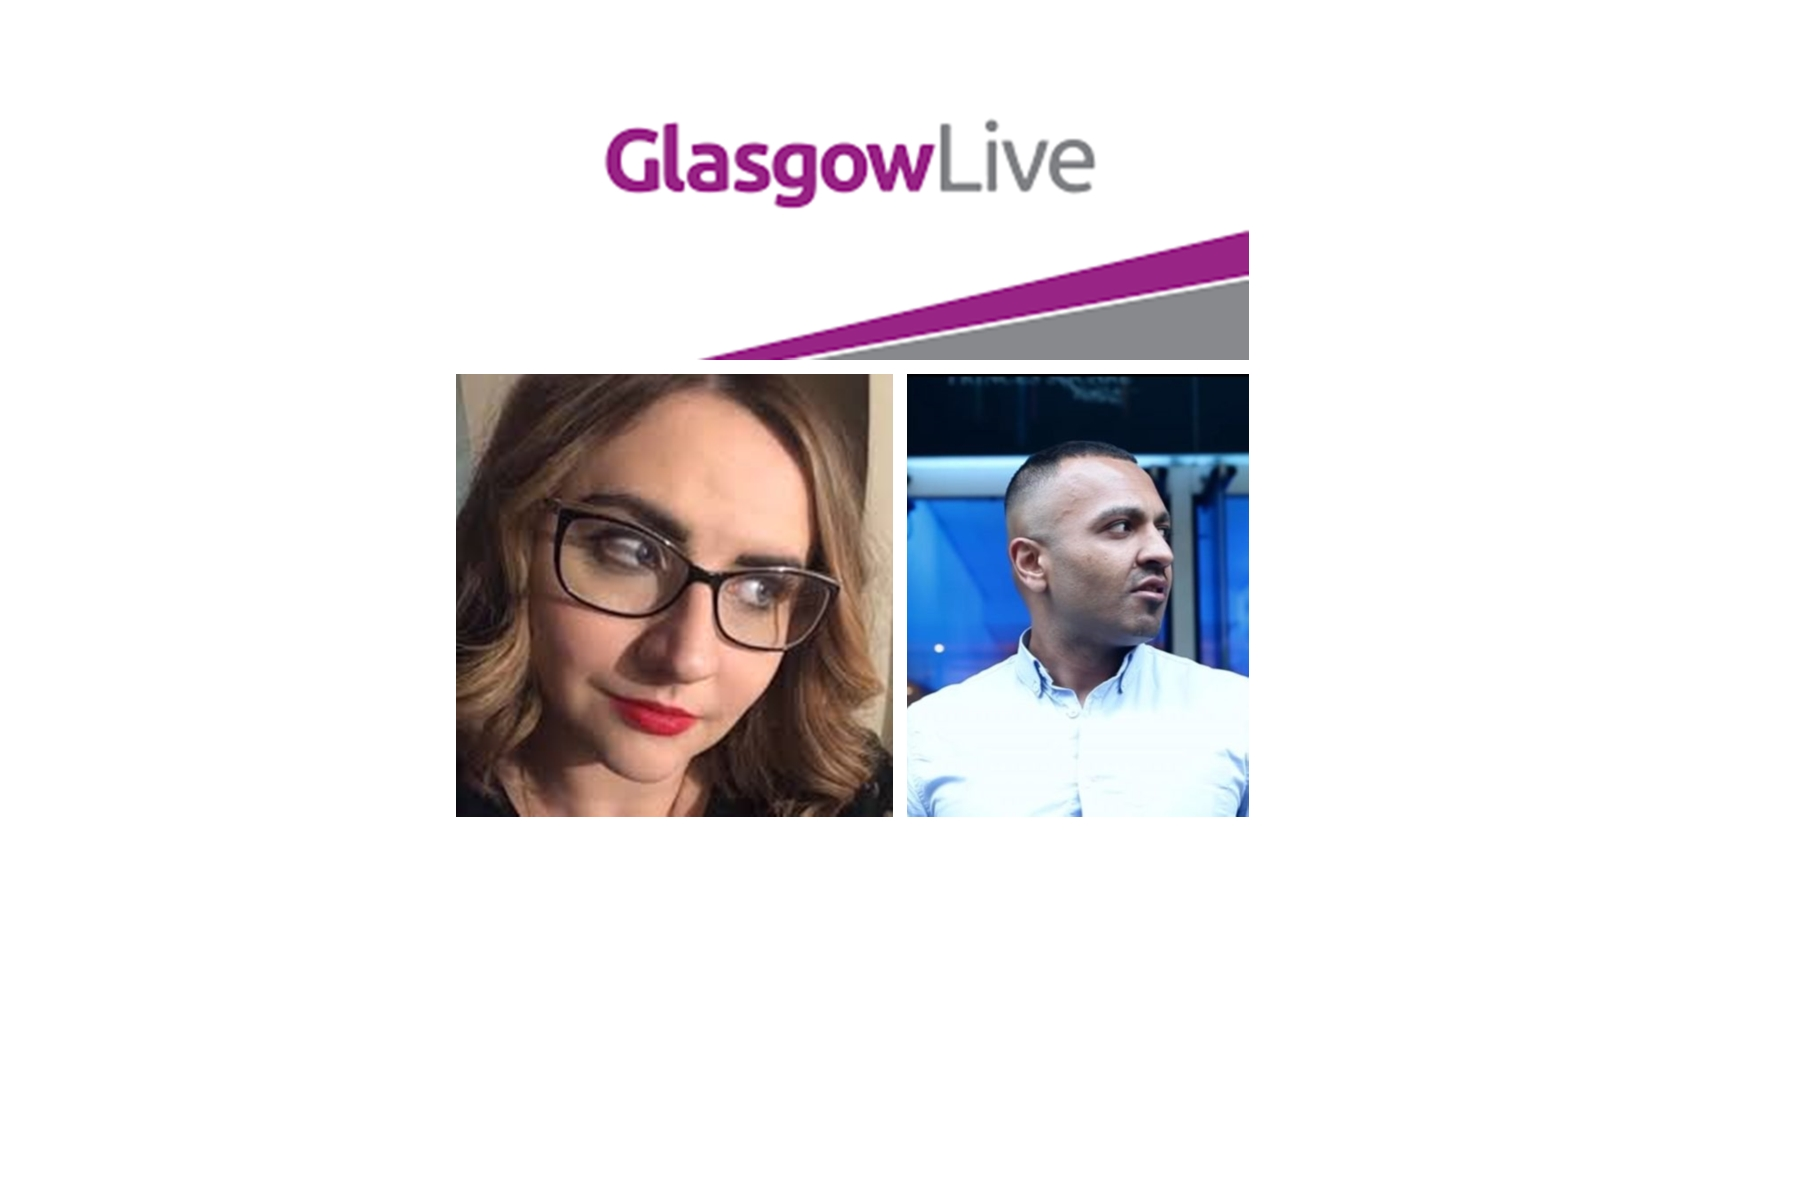 """Amateur Hack Gillian Loney (Glasgow Live) Reports Misinformation About; """"YouTube Removes Addy Agame Account"""""""